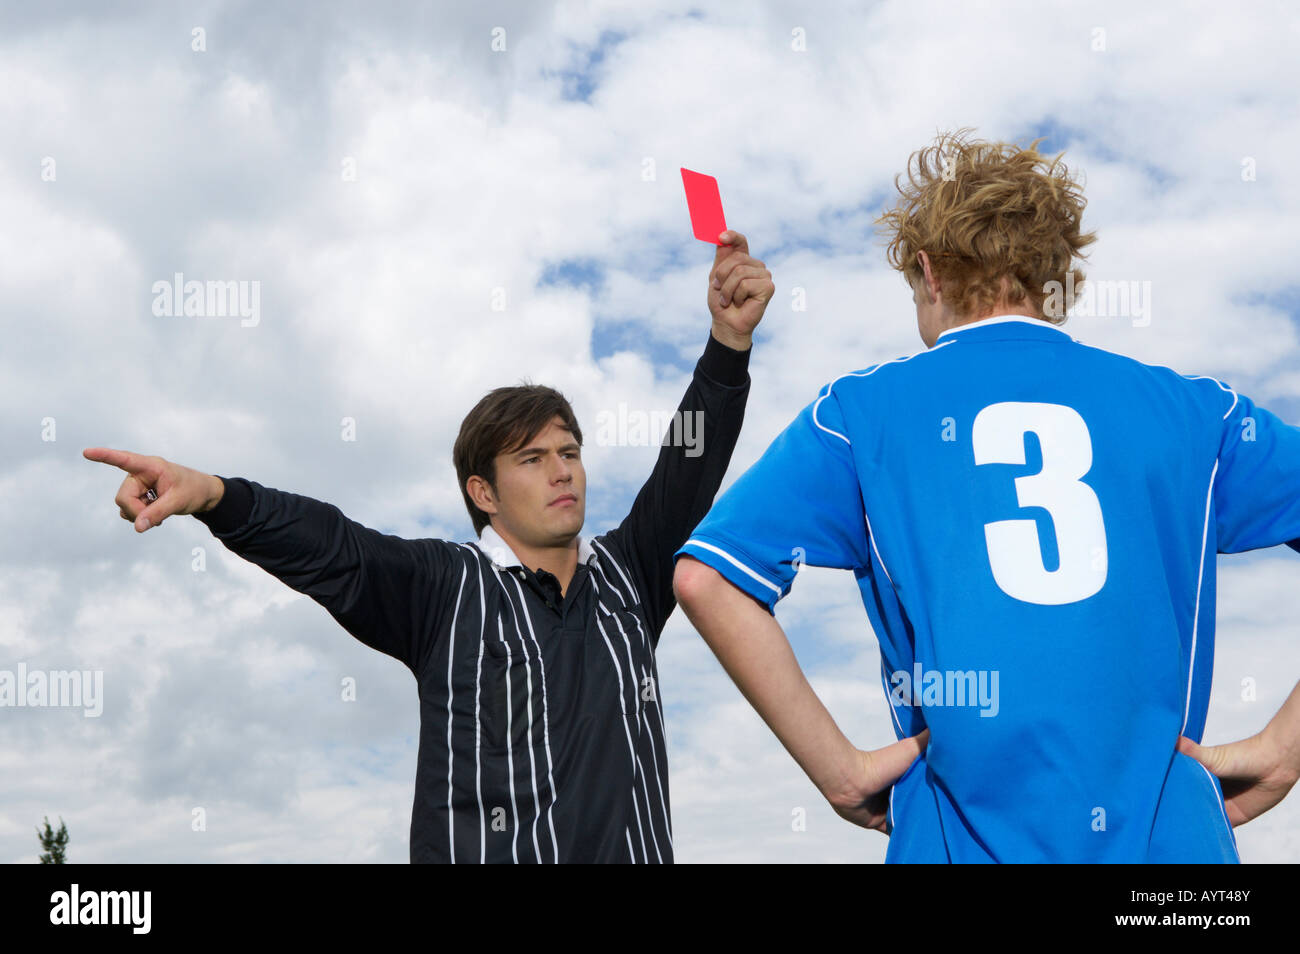 Referee showing red card - Stock Image